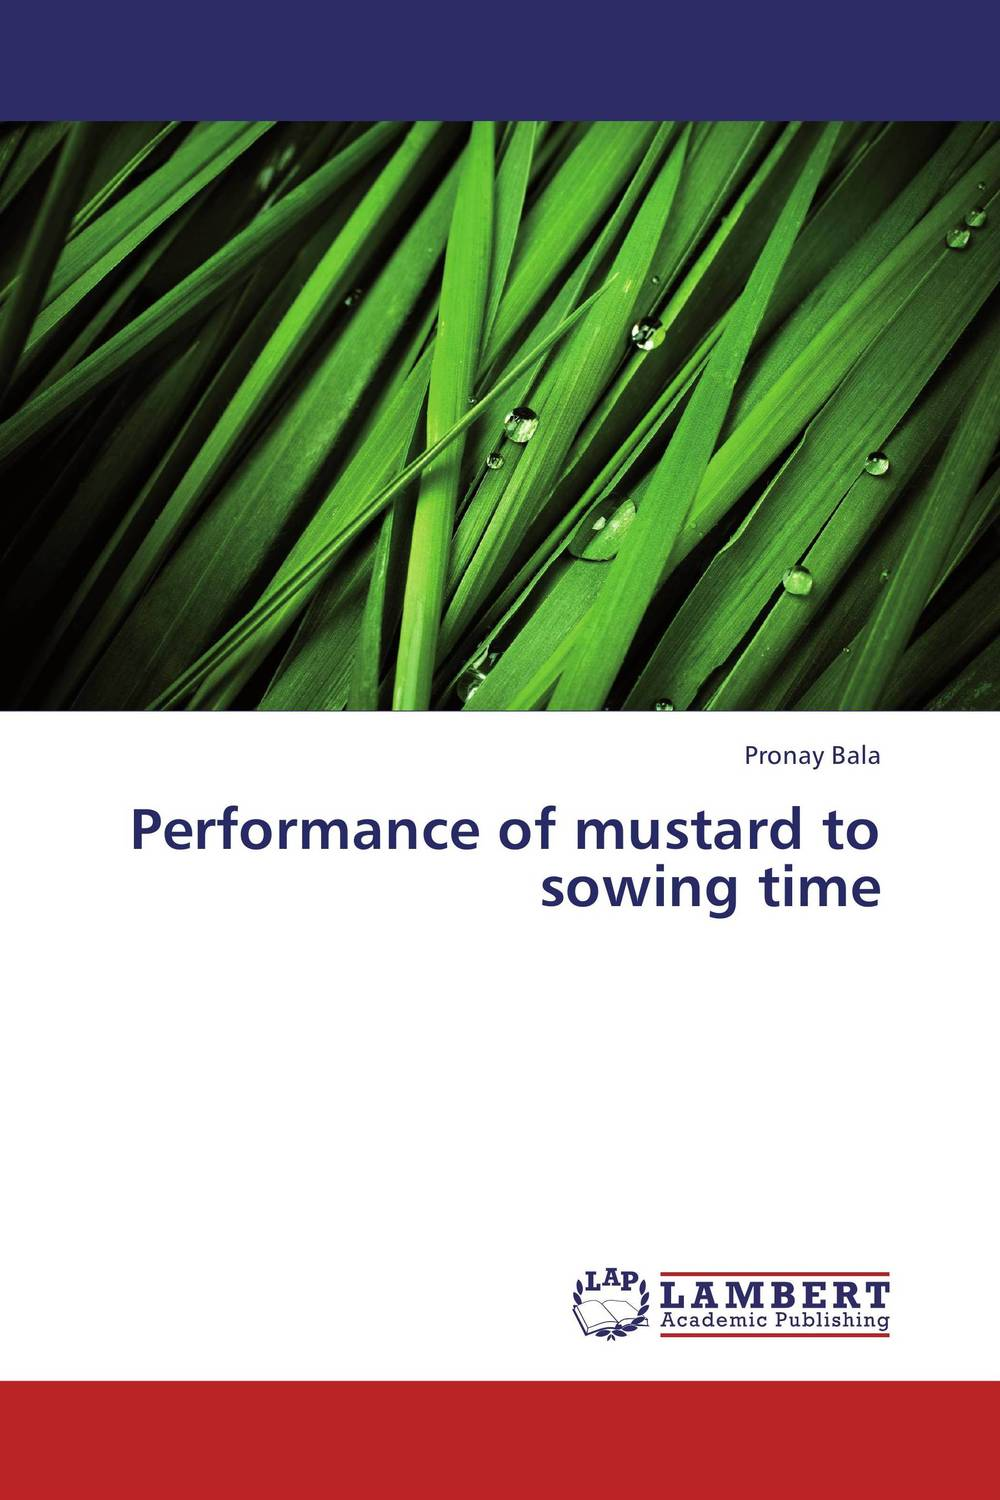 Performance of mustard to sowing time determinants of yield performance in small scale catfish production